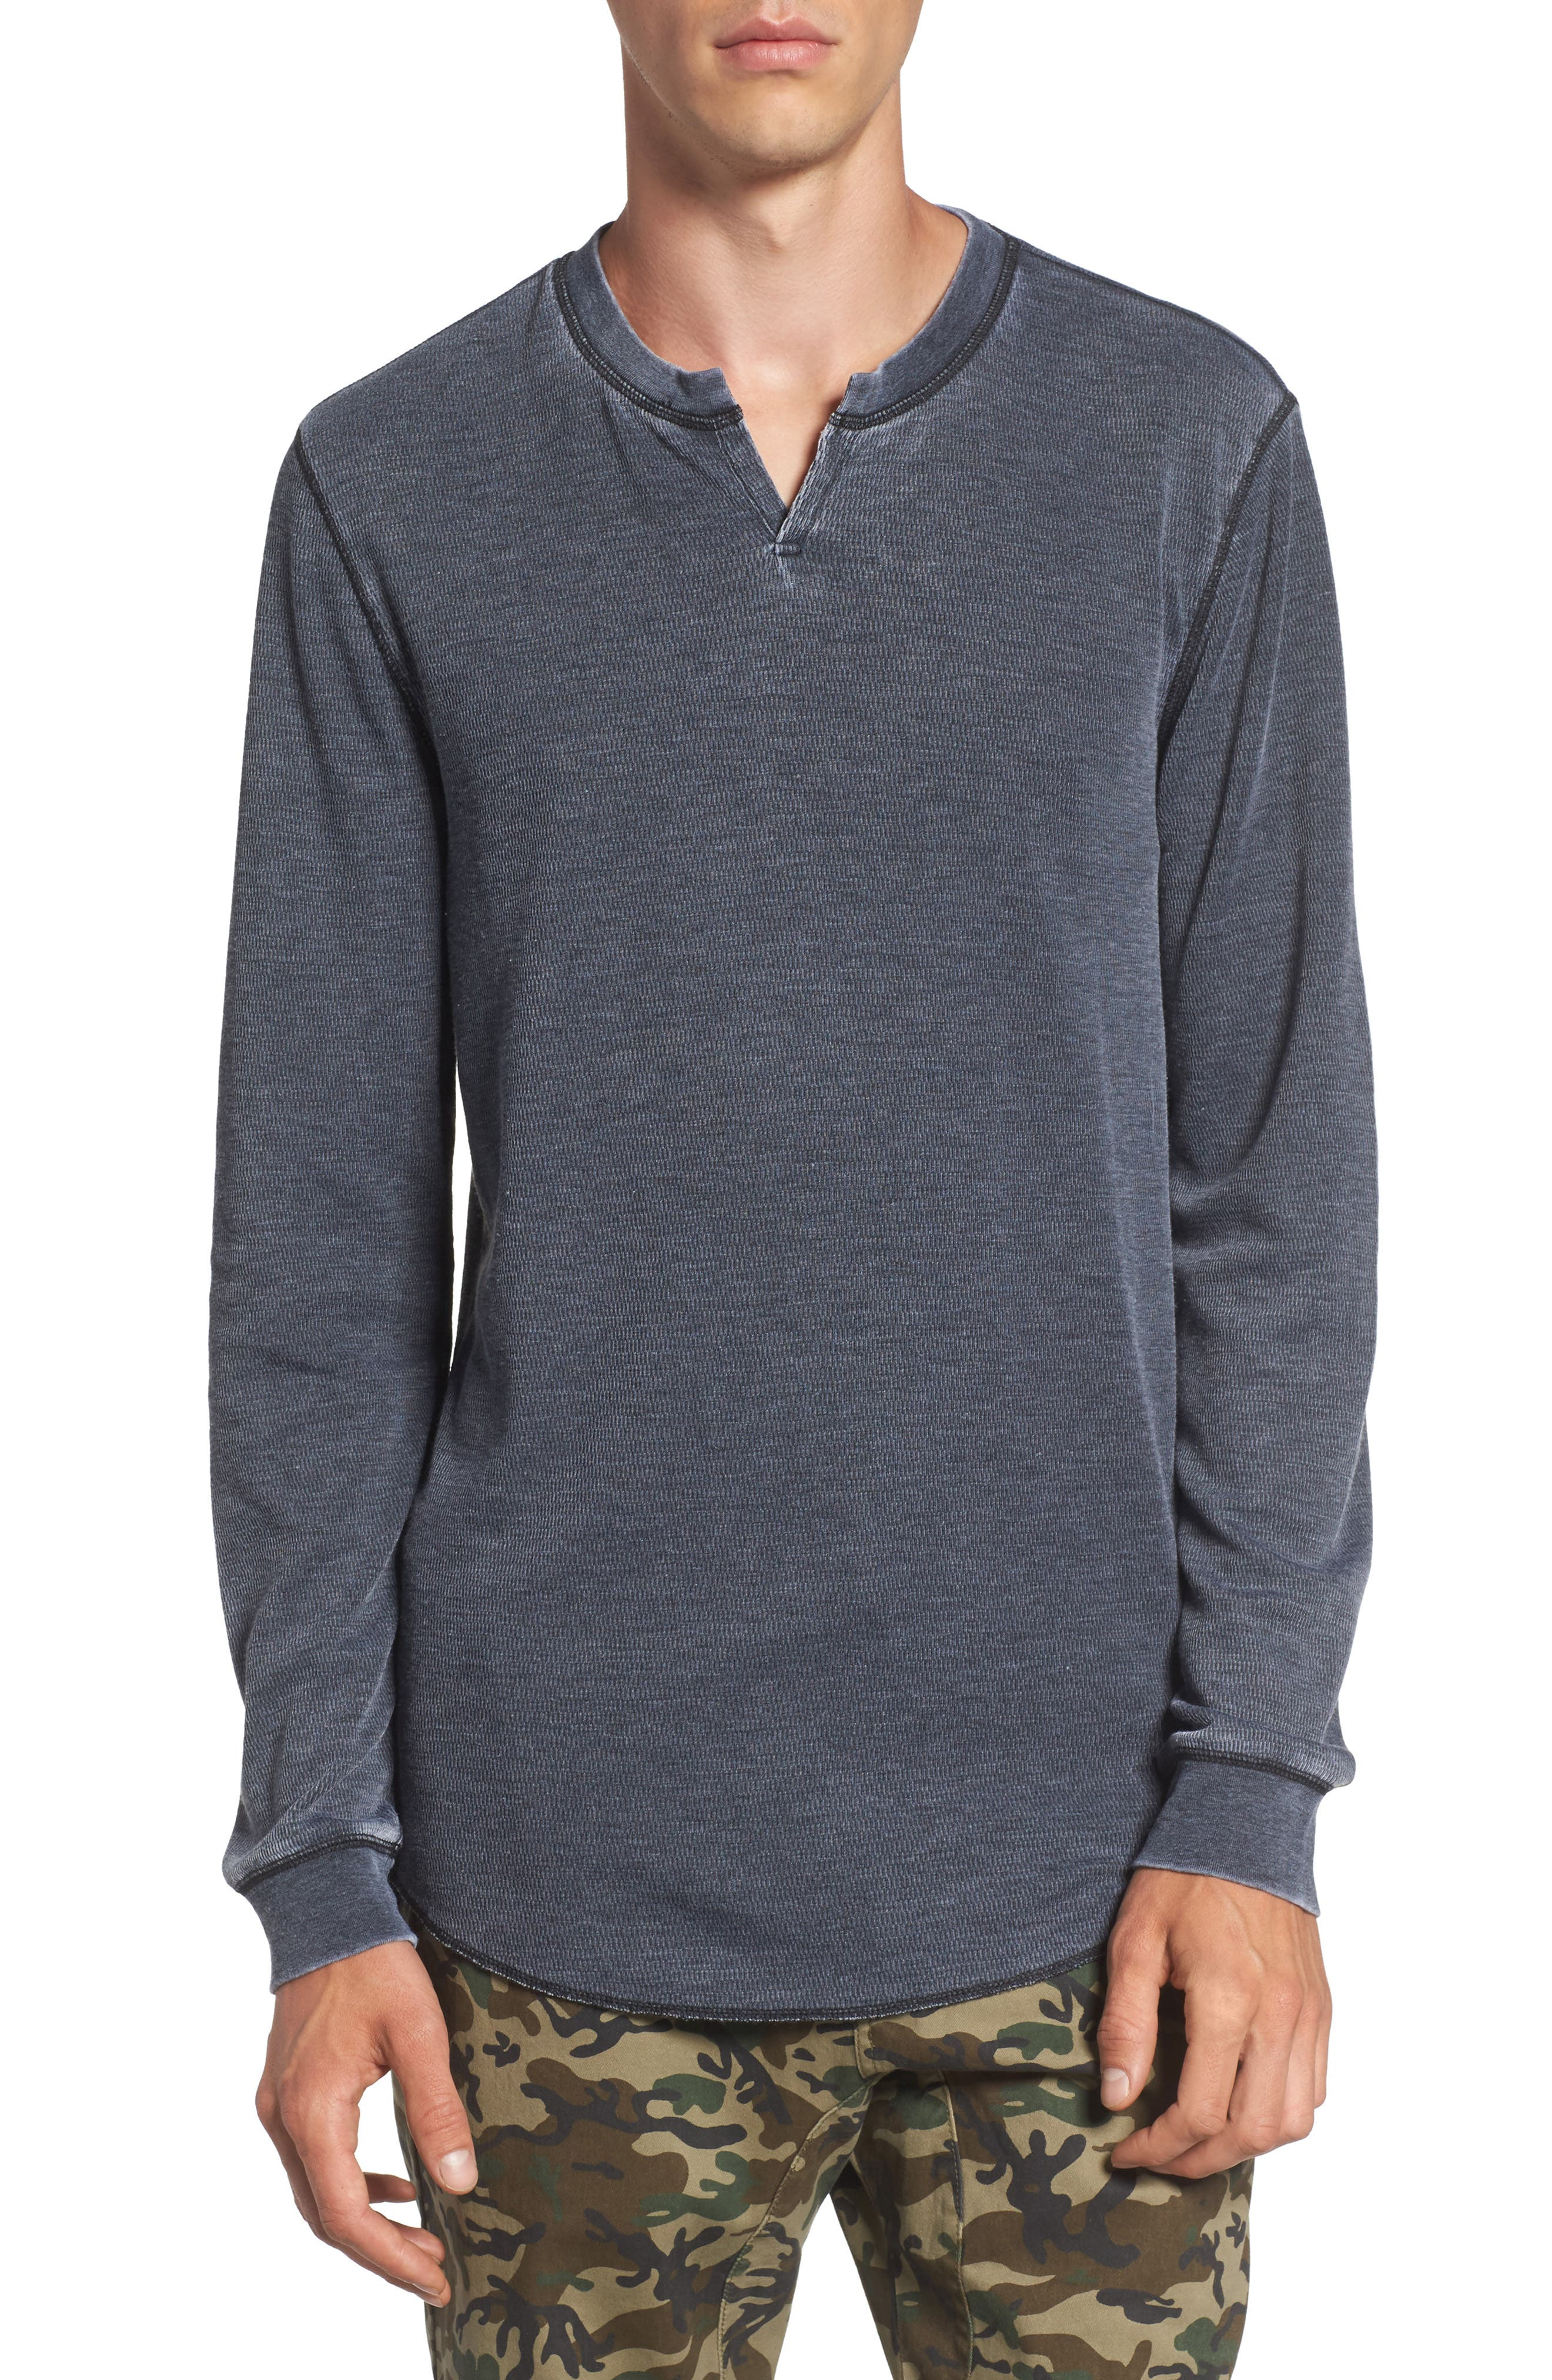 The Rail Notch Neck Thermal T-Shirt